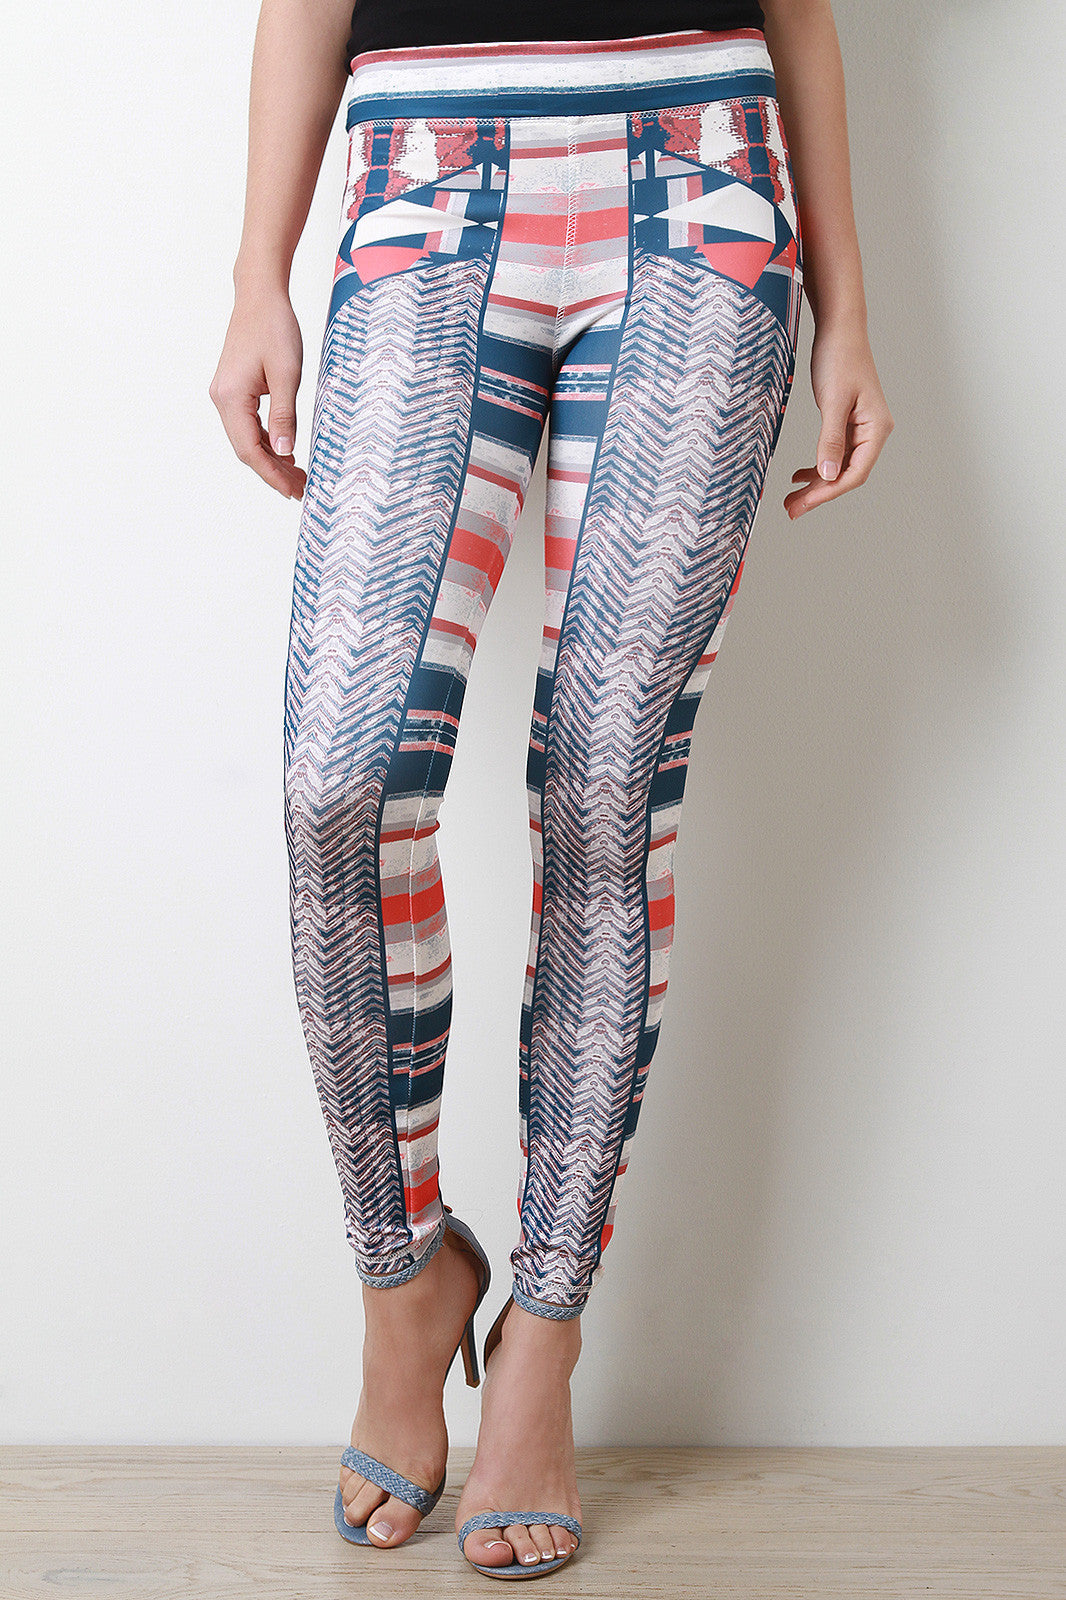 Geo Tribal Leggings - Thick 'N' Curvy Shop - 2